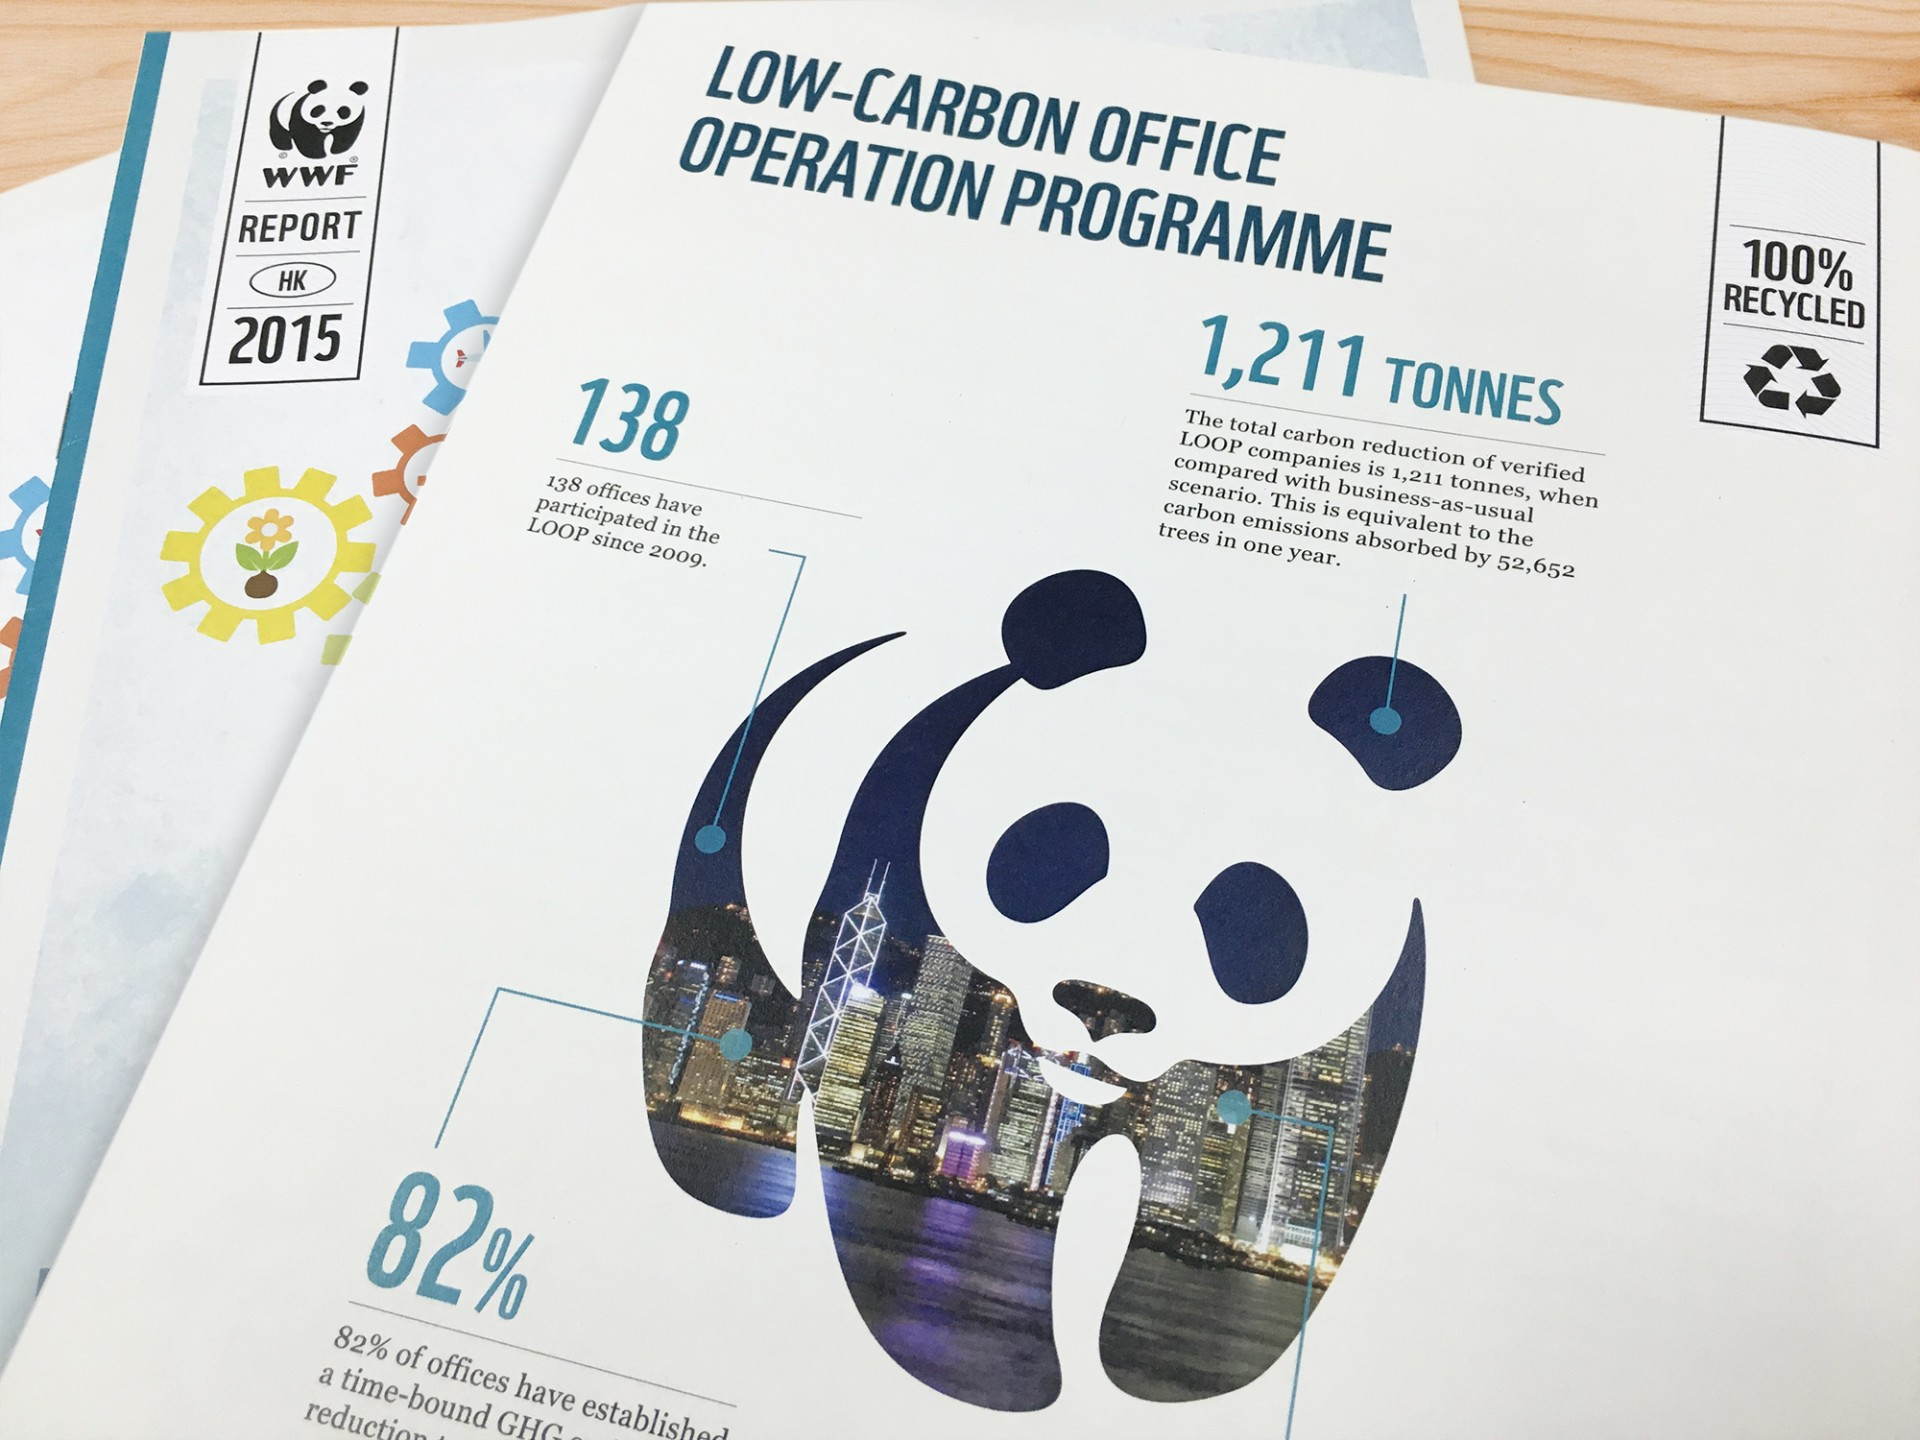 WWF - Low-Card Office Operation Programme Report, Infographic Design